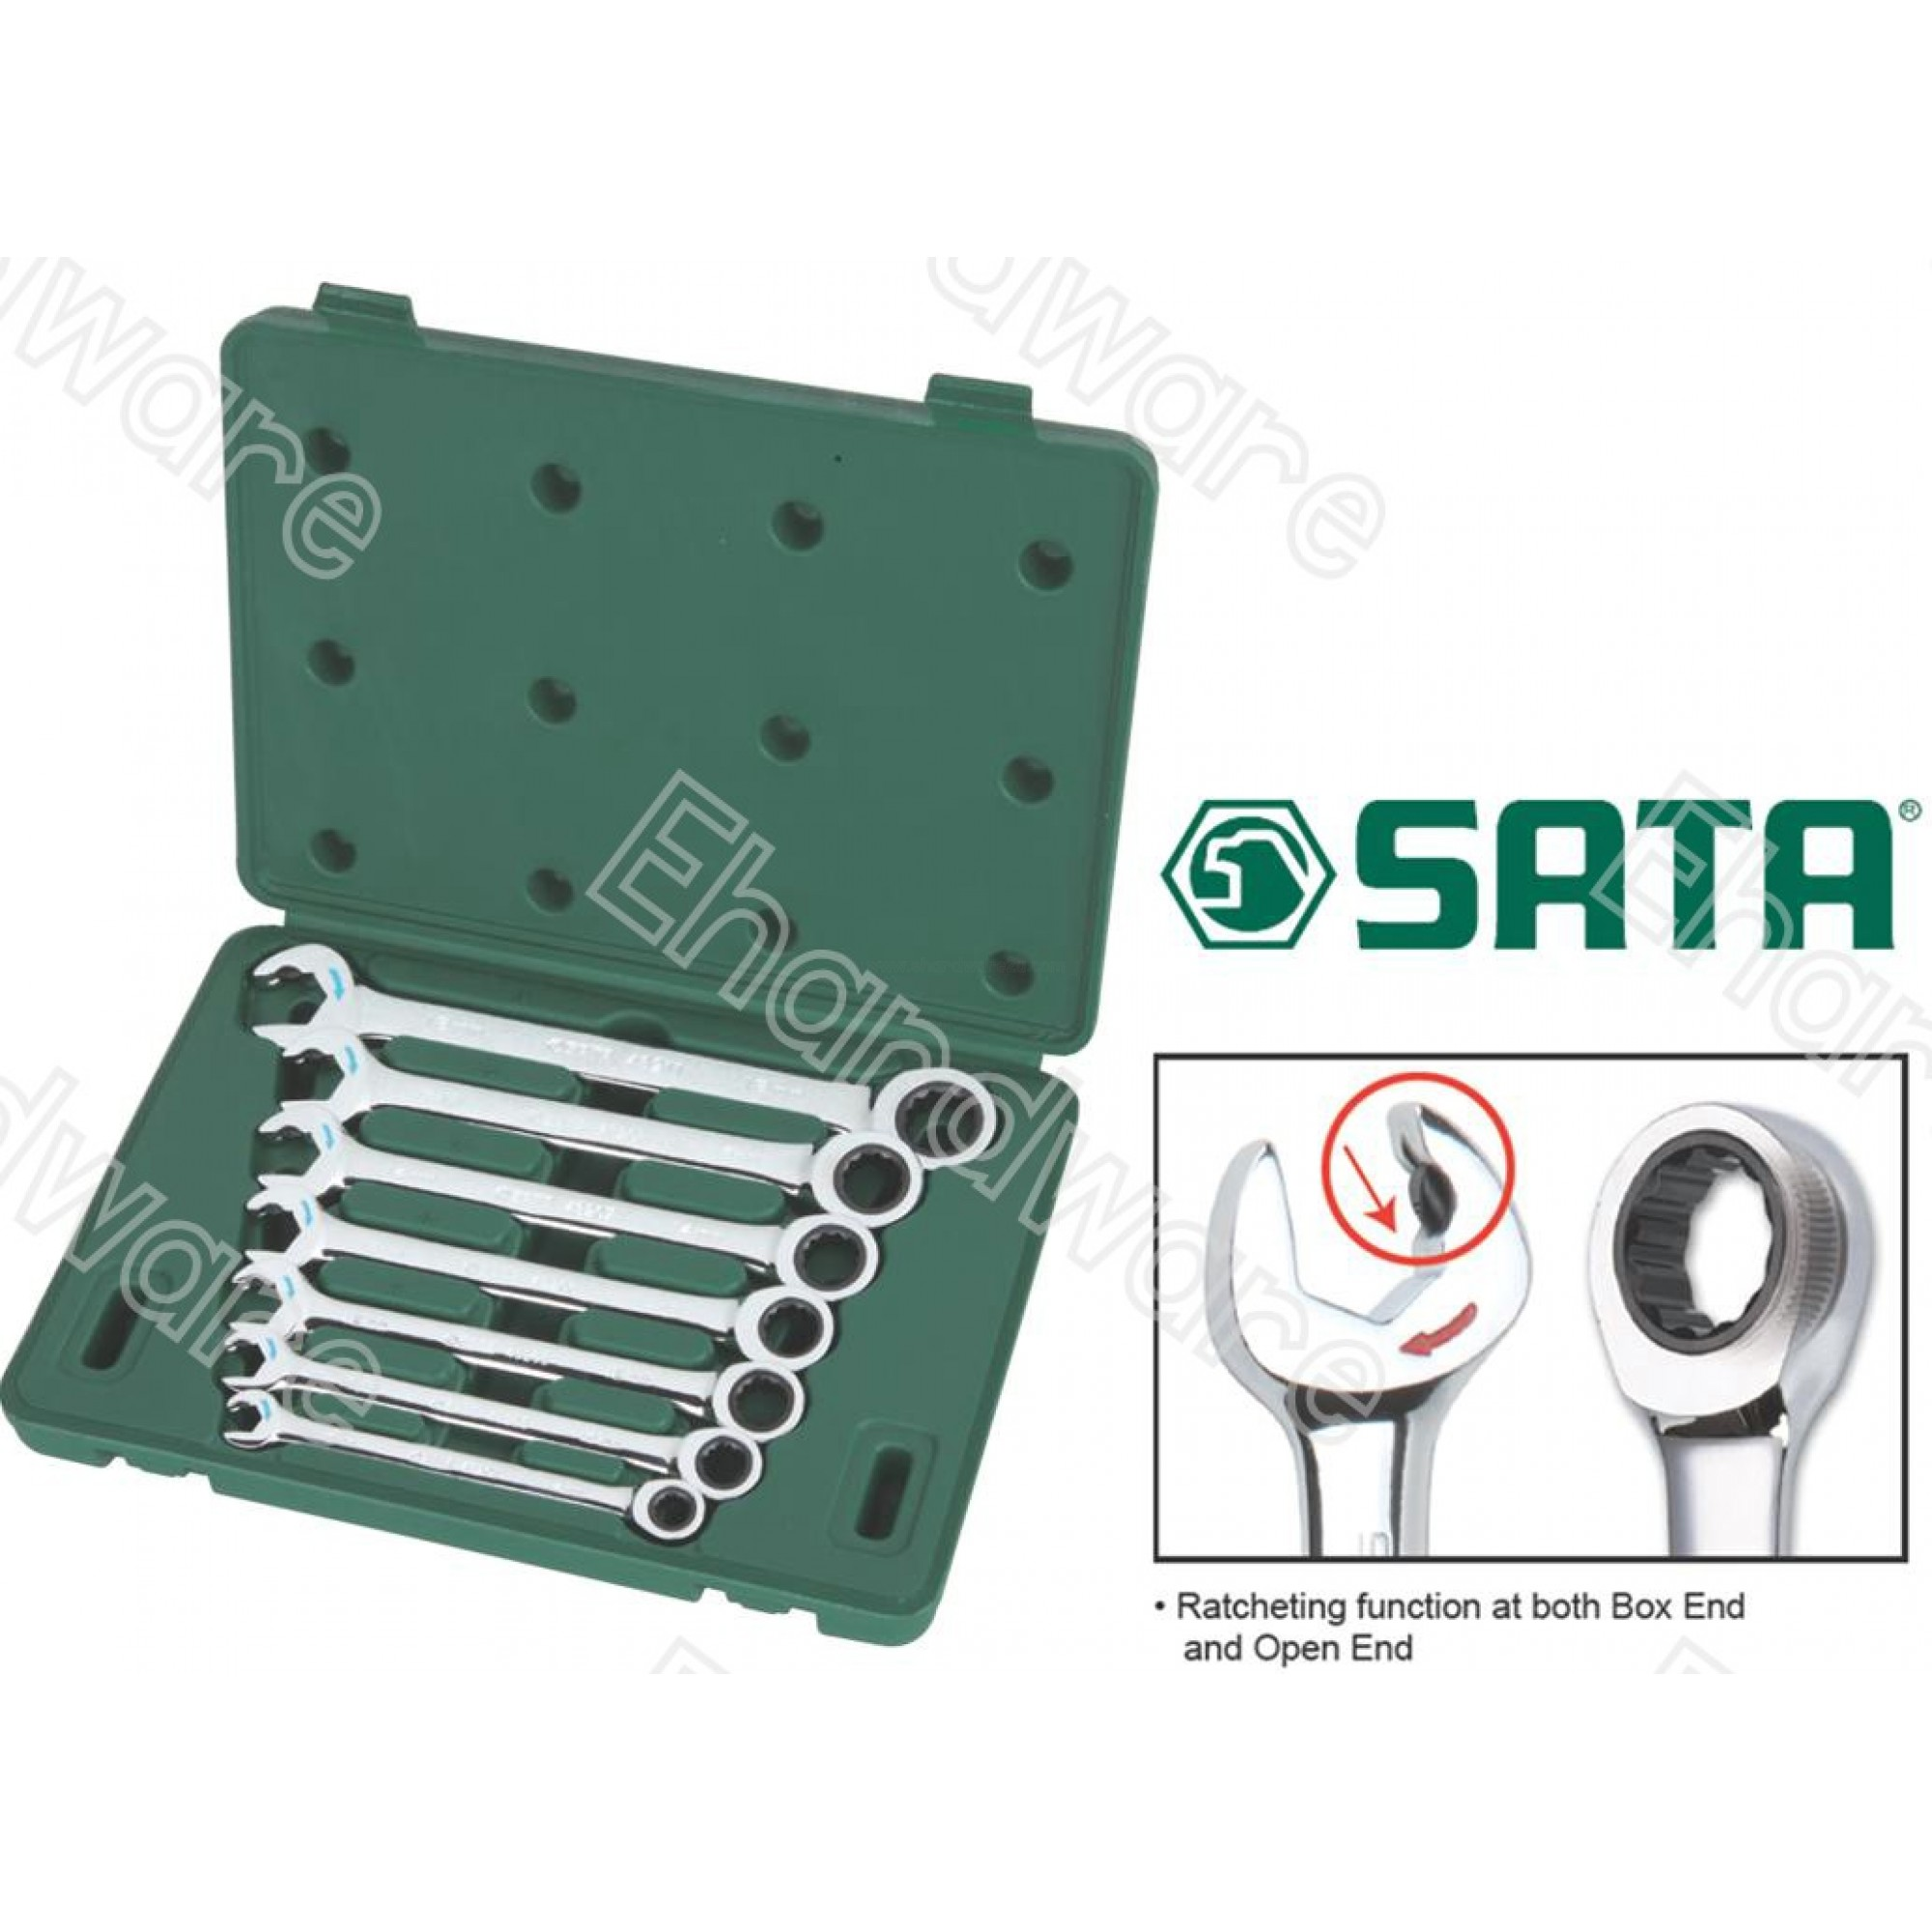 Sata 09024 7PCS DOUBLE RATCHETING COMBINATION WRENCH SET (METRIC)